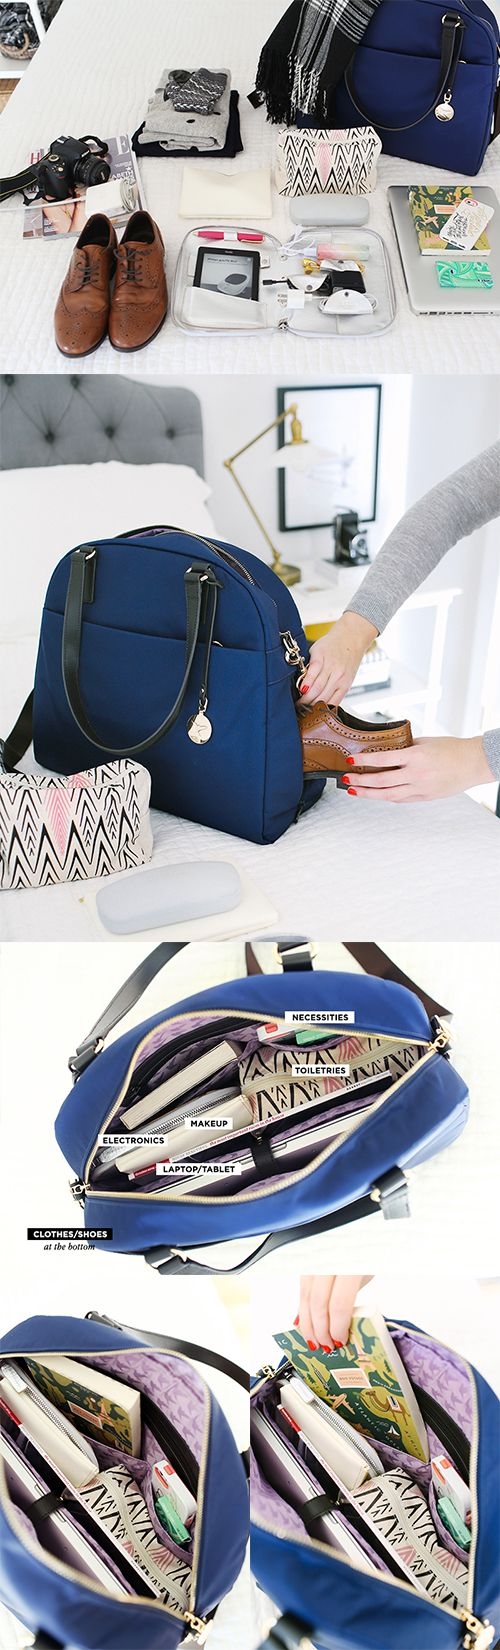 """The OG"" - lightweight travel bag, tech friendly laptop tote, and stylish gym bag. Designed by Lo & Sons - loandsons.com. Photo by The Every Girl - theeverygirl.com"